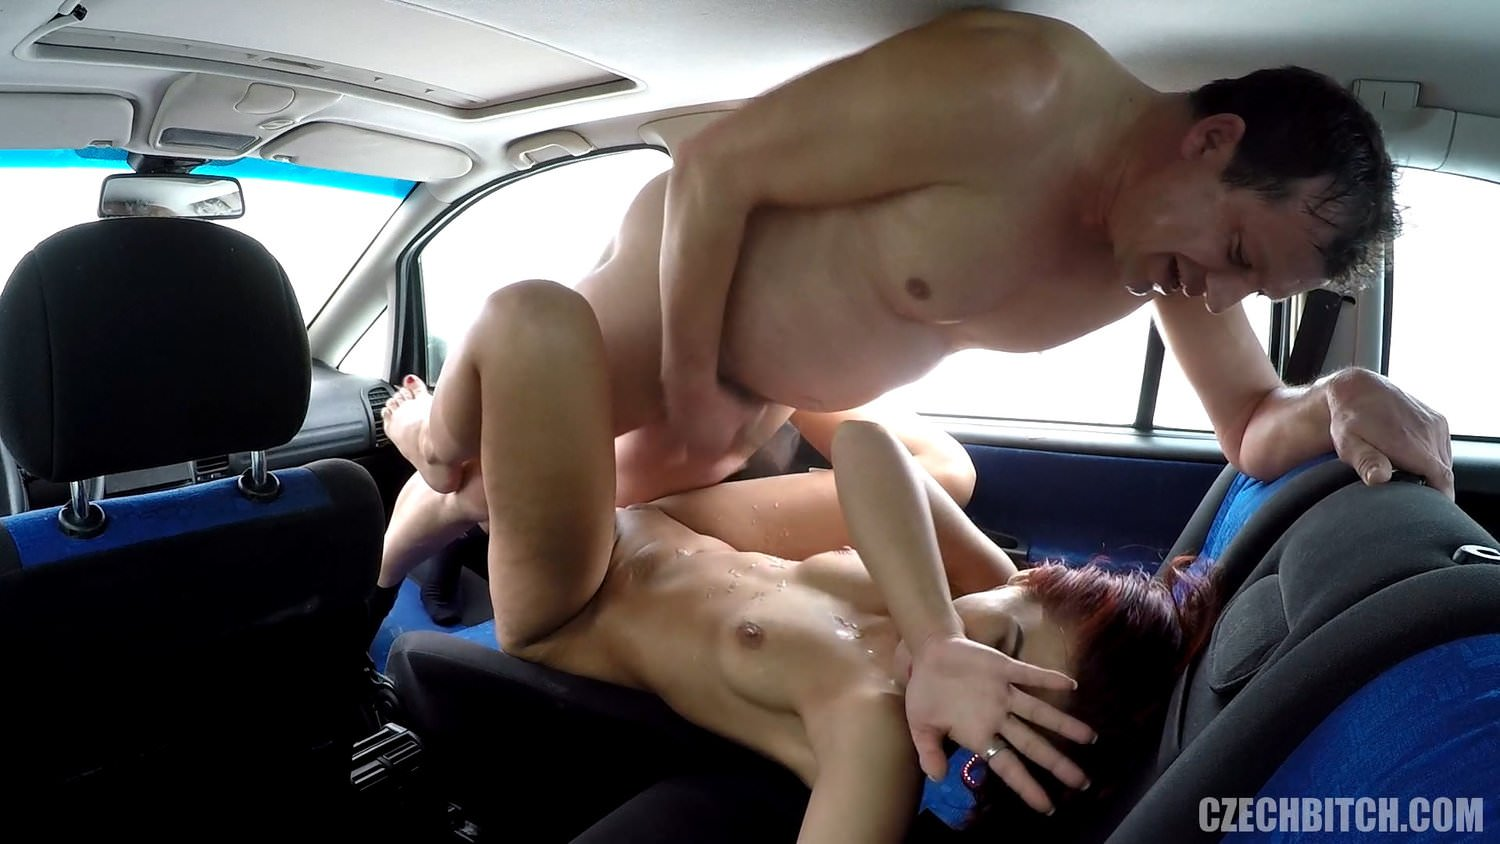 Real Czech Prostitute Takes Money For Car Sex Free Porn 7B-8882